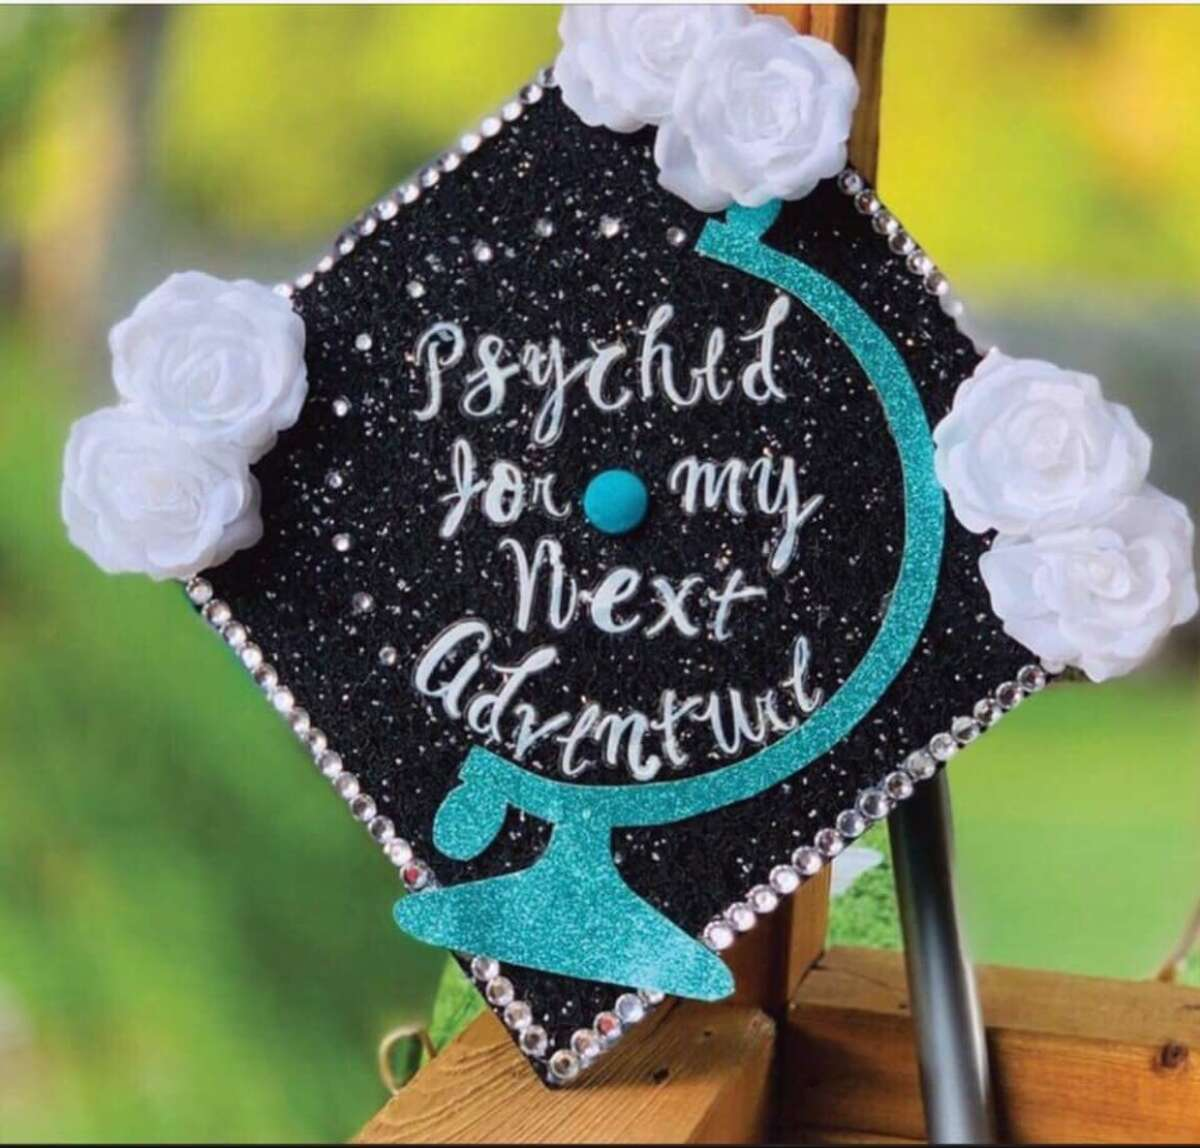 Graduation cap picture submitted by Veronica Abrego on Saturday, May 25, 2019.